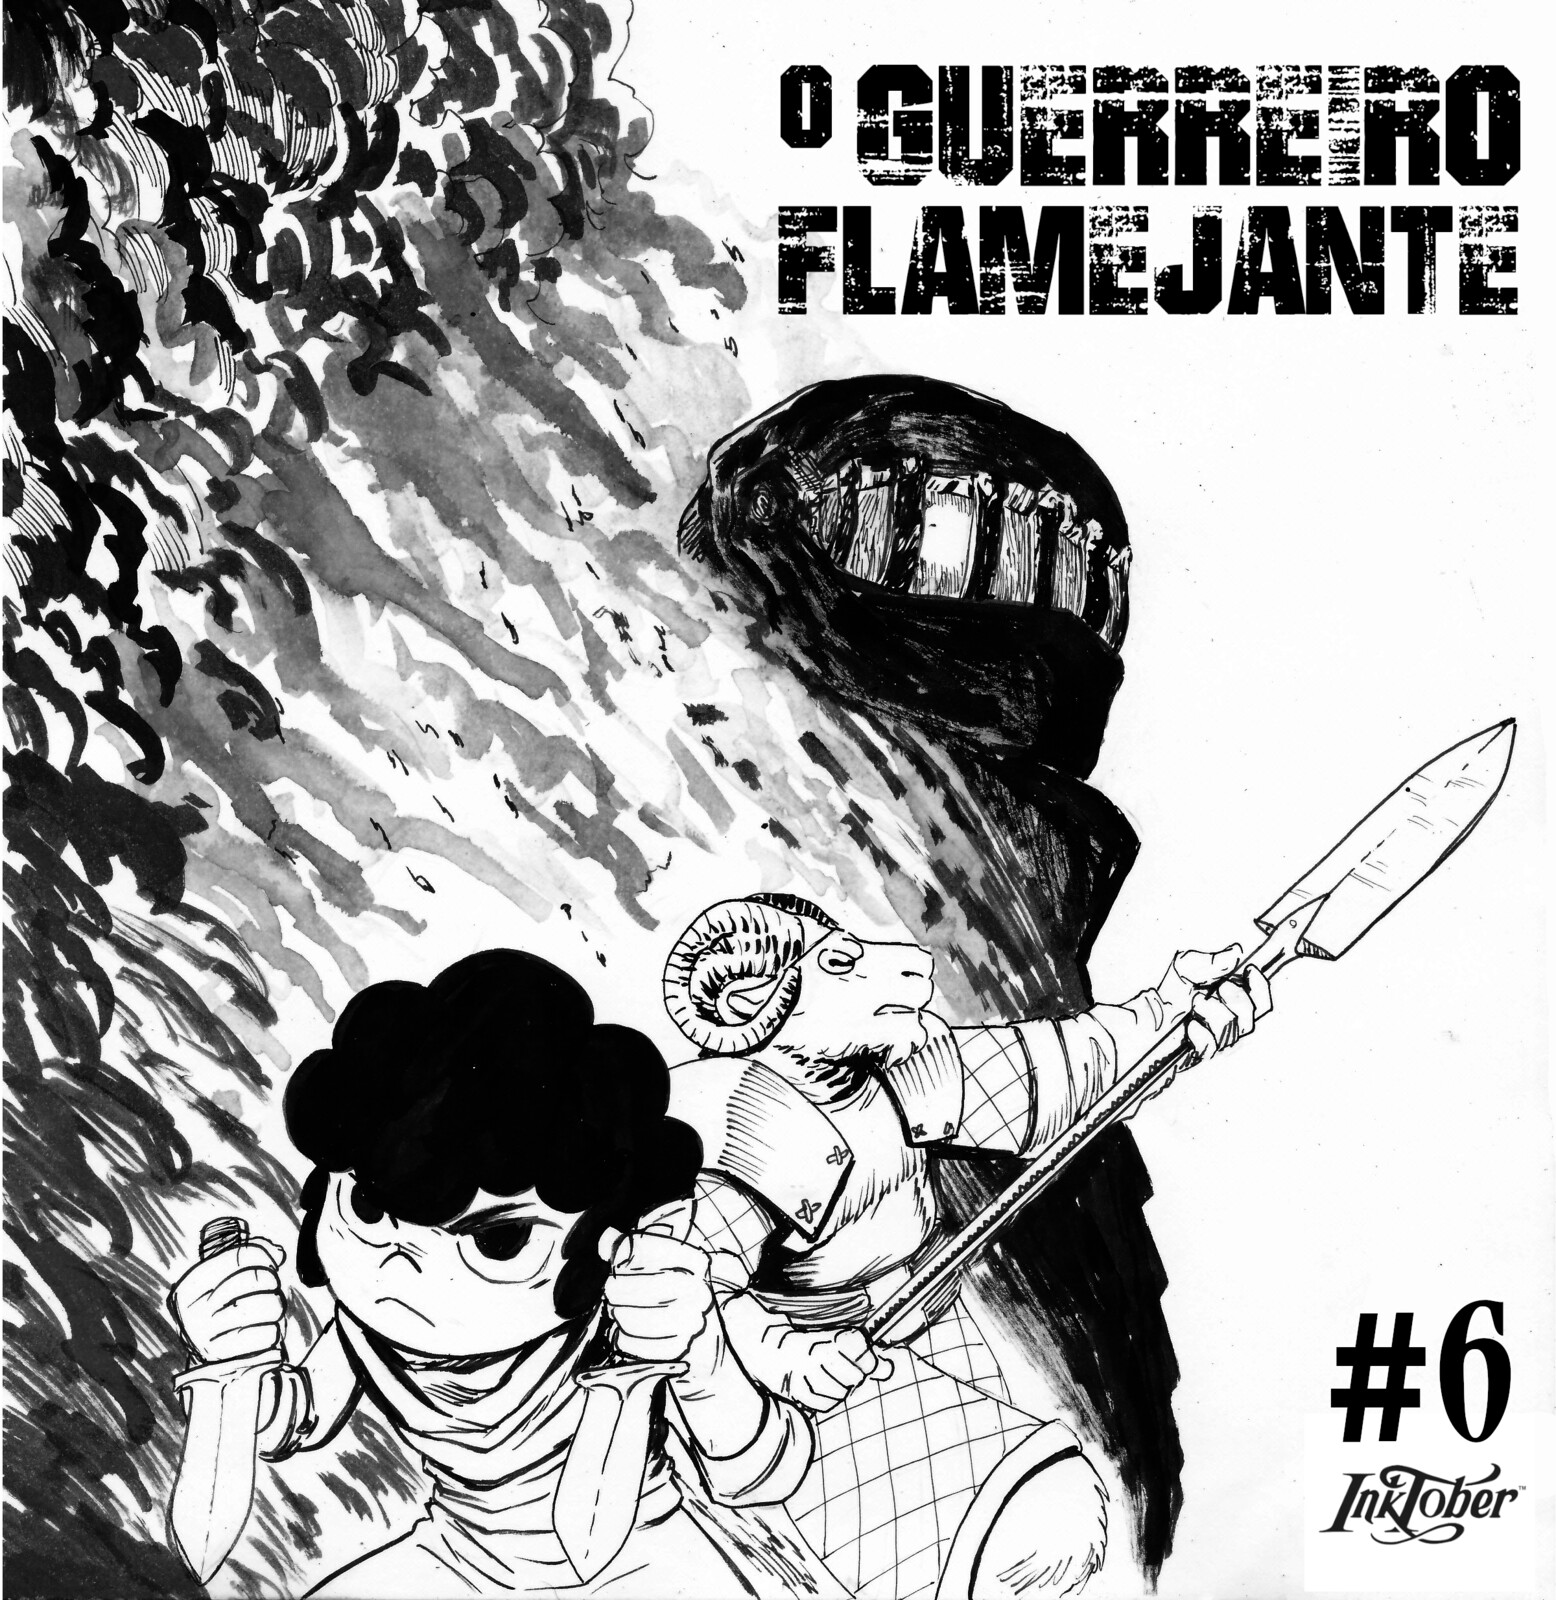 06- The Flamming Warrior